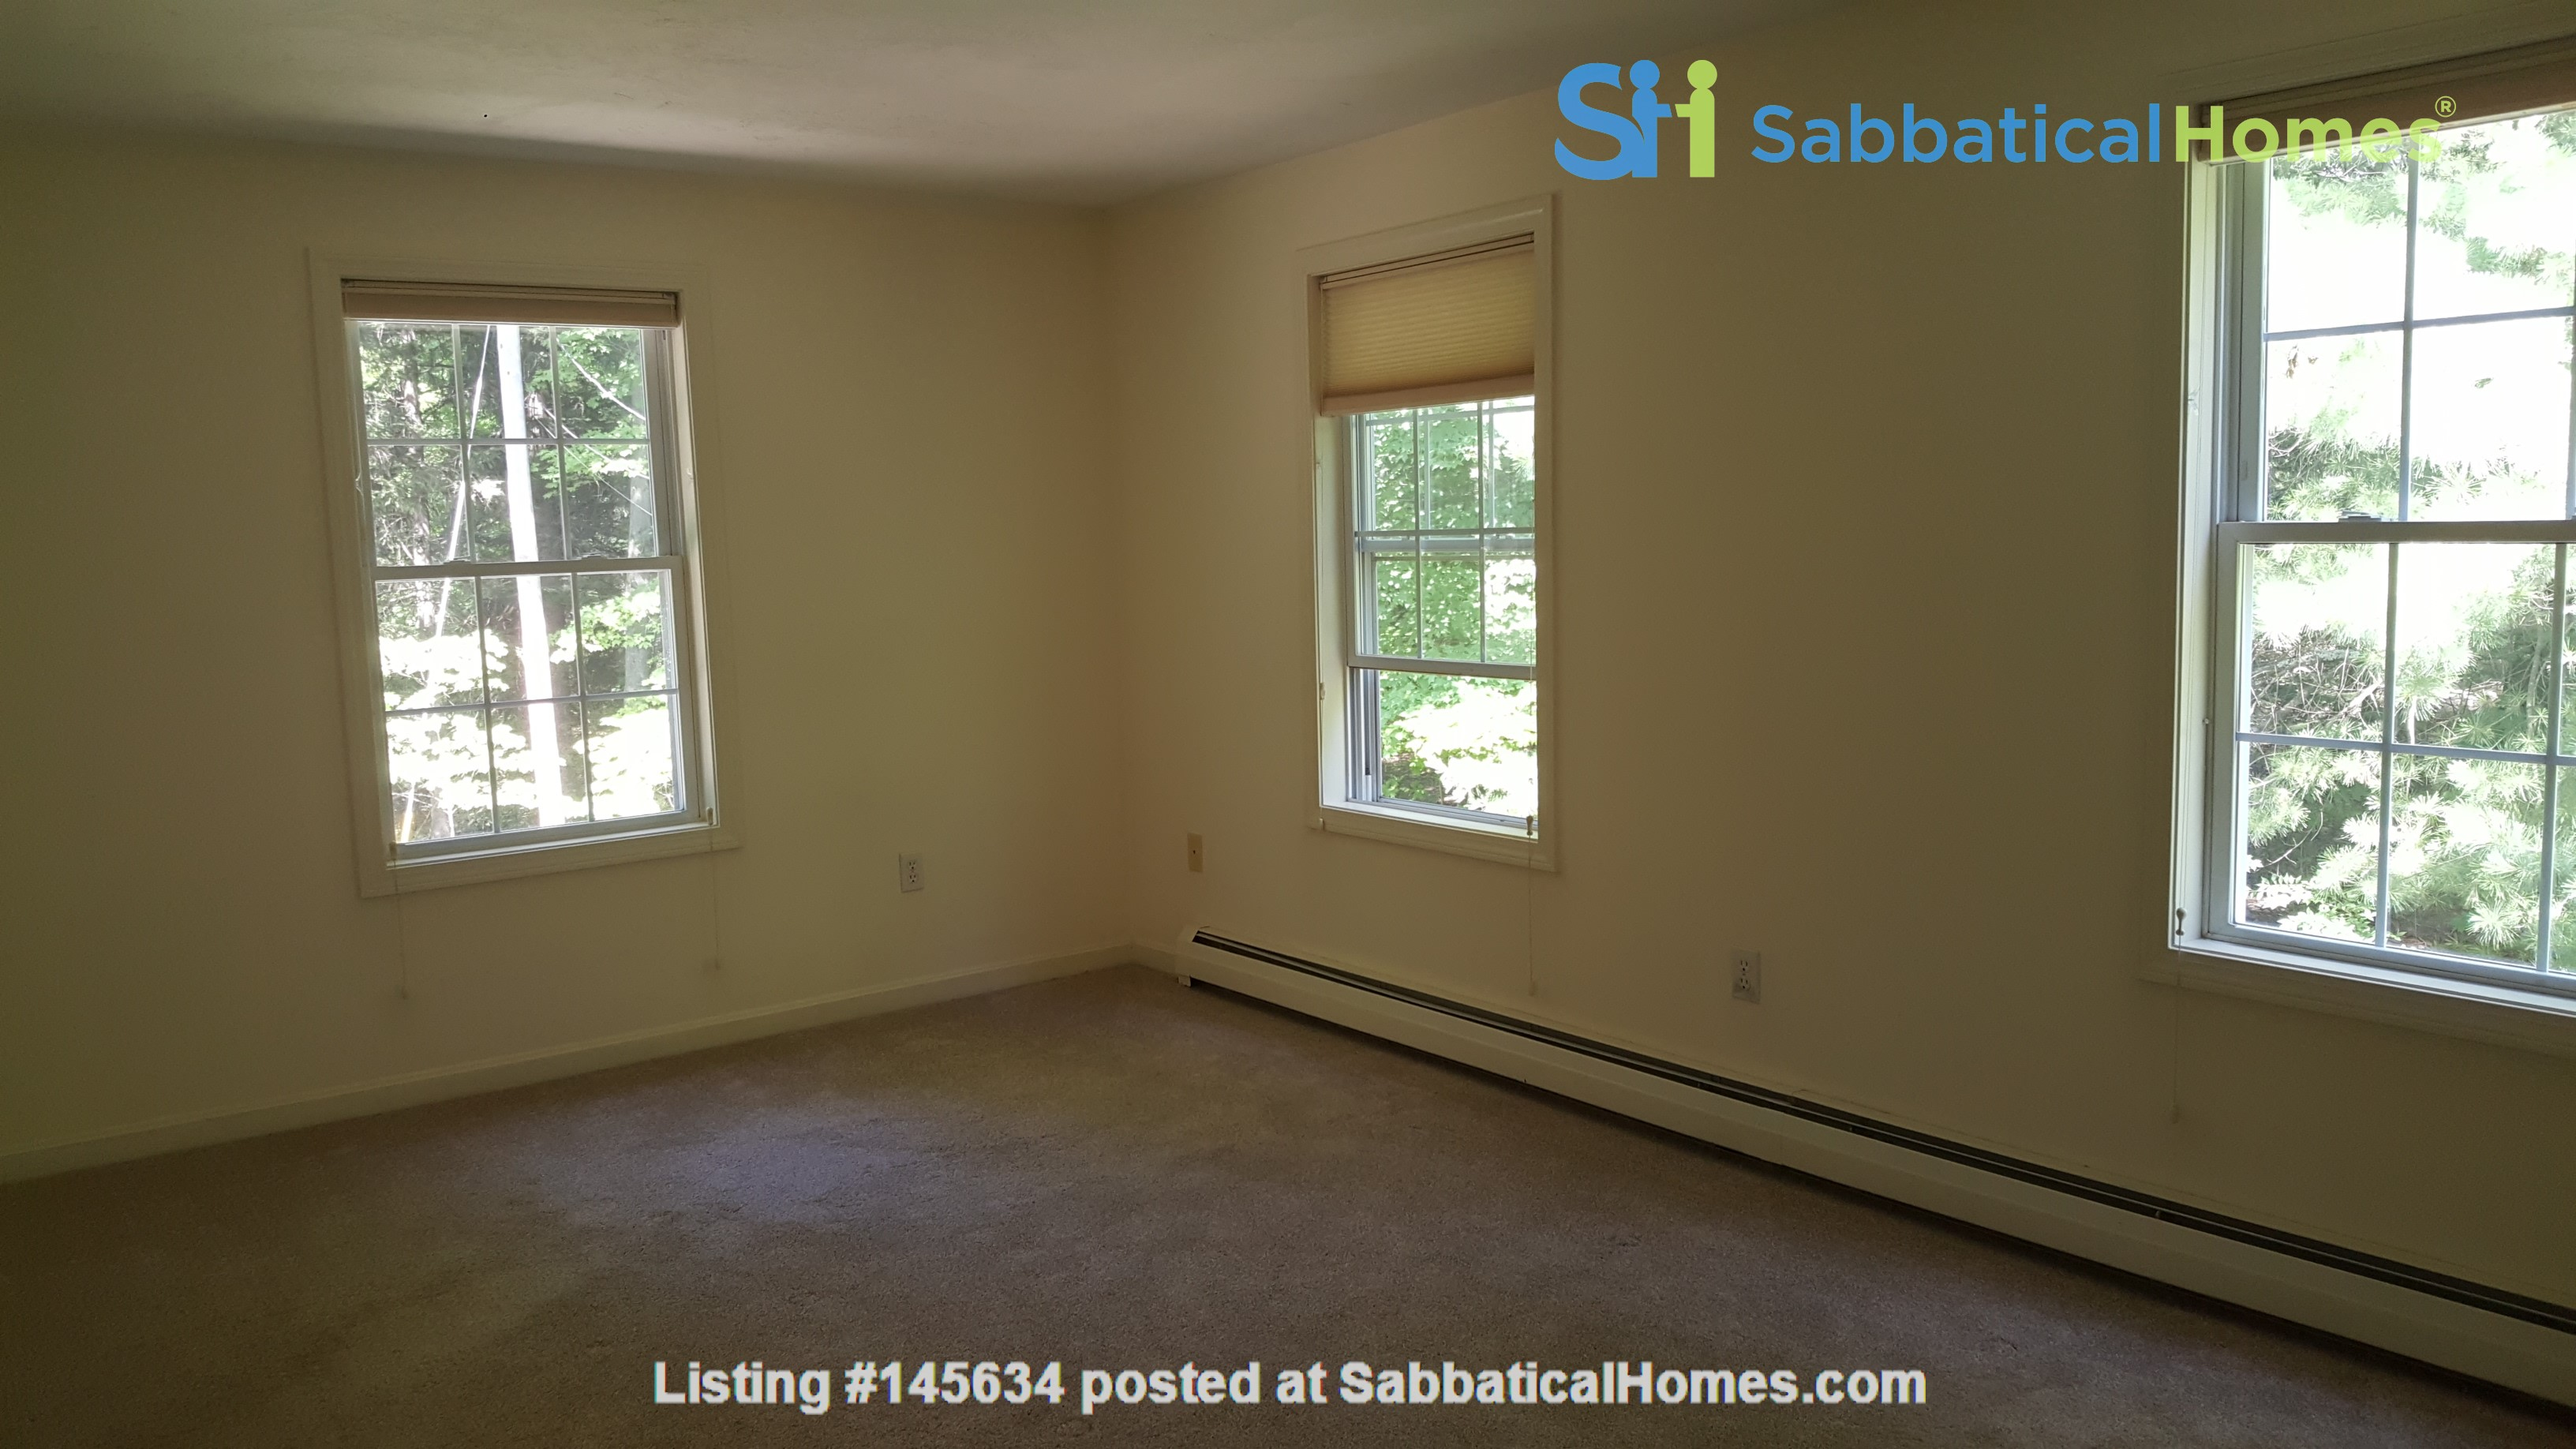 2 bedroom country house / 25 miles North of Boston and Cambridge Home Rental in Andover, Massachusetts, United States 8